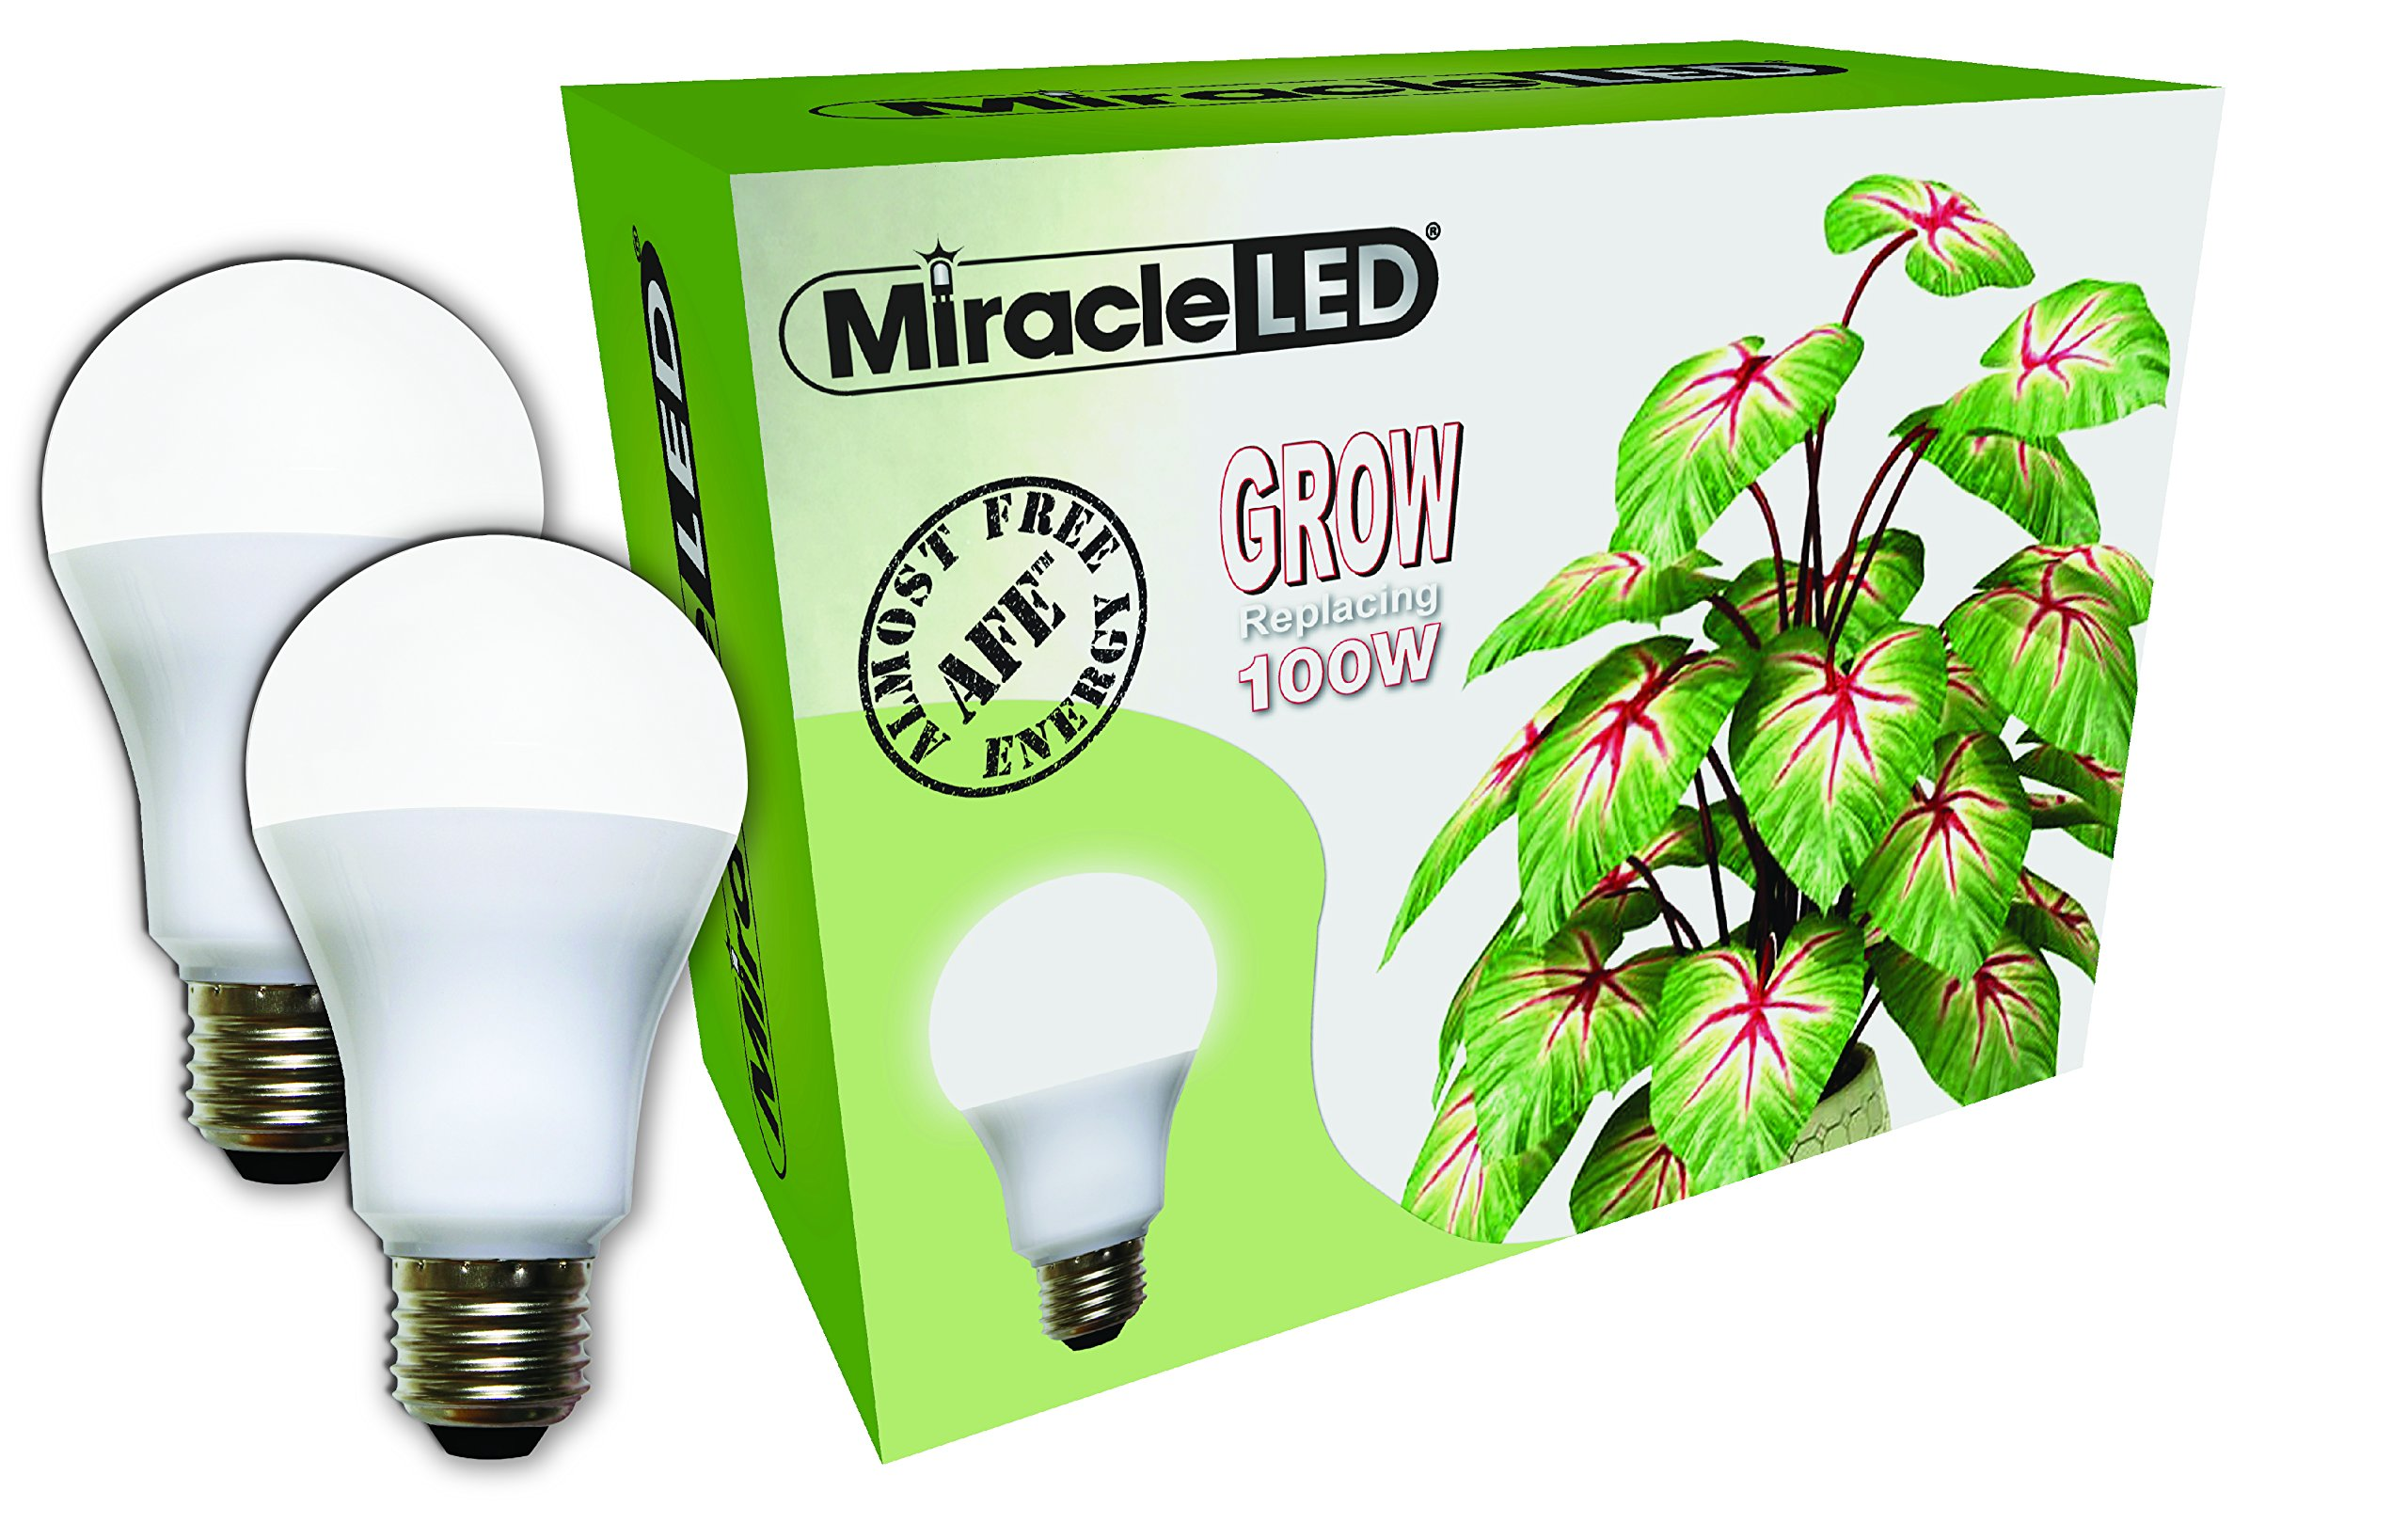 Miracle LED Almost Free Energy 100W Spectrum Grow Lite - Daylight White Full Spectrum LED Indoor Plant Growing Light Bulb for DIY Horticulture, Hydroponics, and Indoor Gardens (604301) 2Pack by Miracle LED